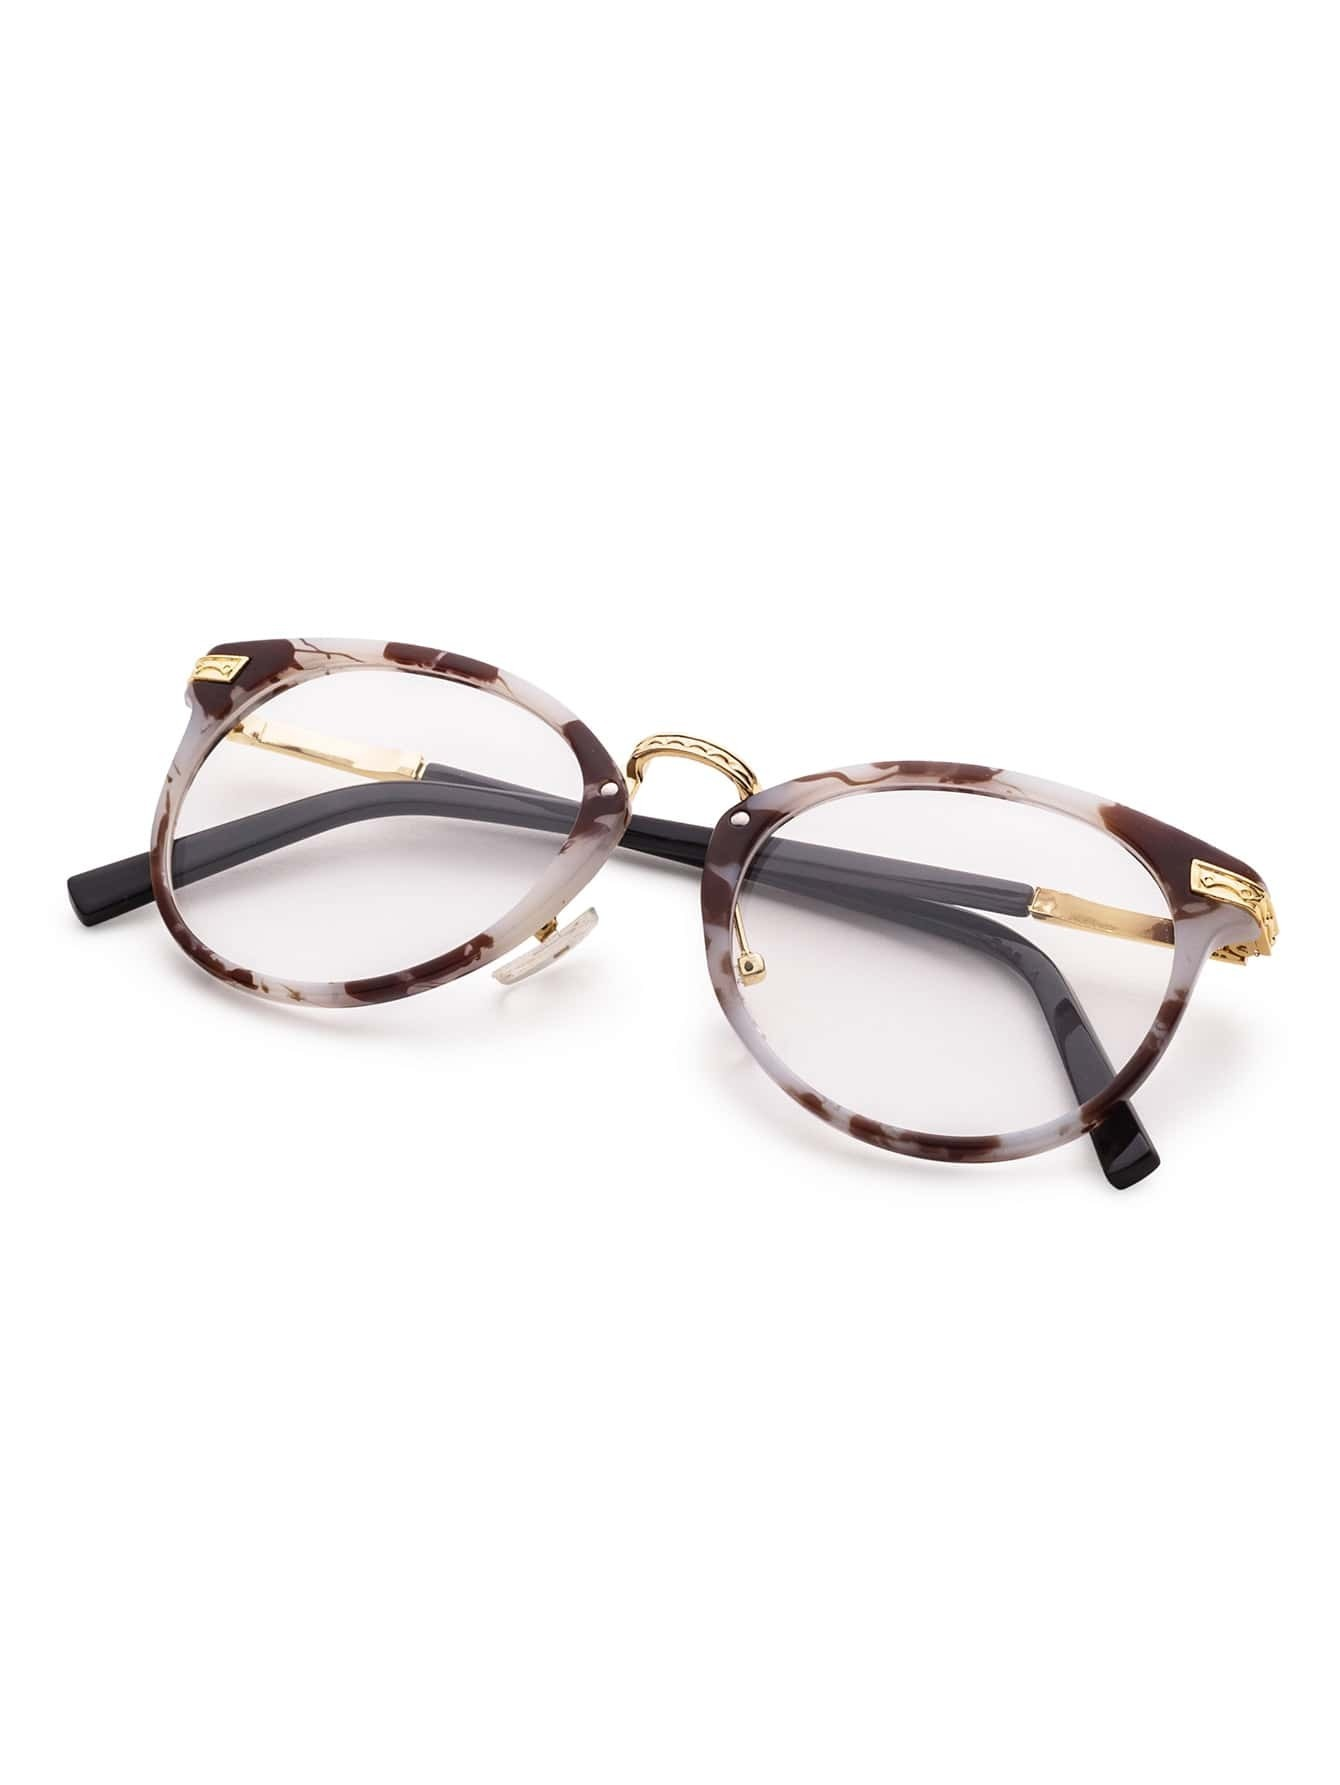 Marble Frame Metal Arm Clear Lens Glasses -SheIn(Sheinside)